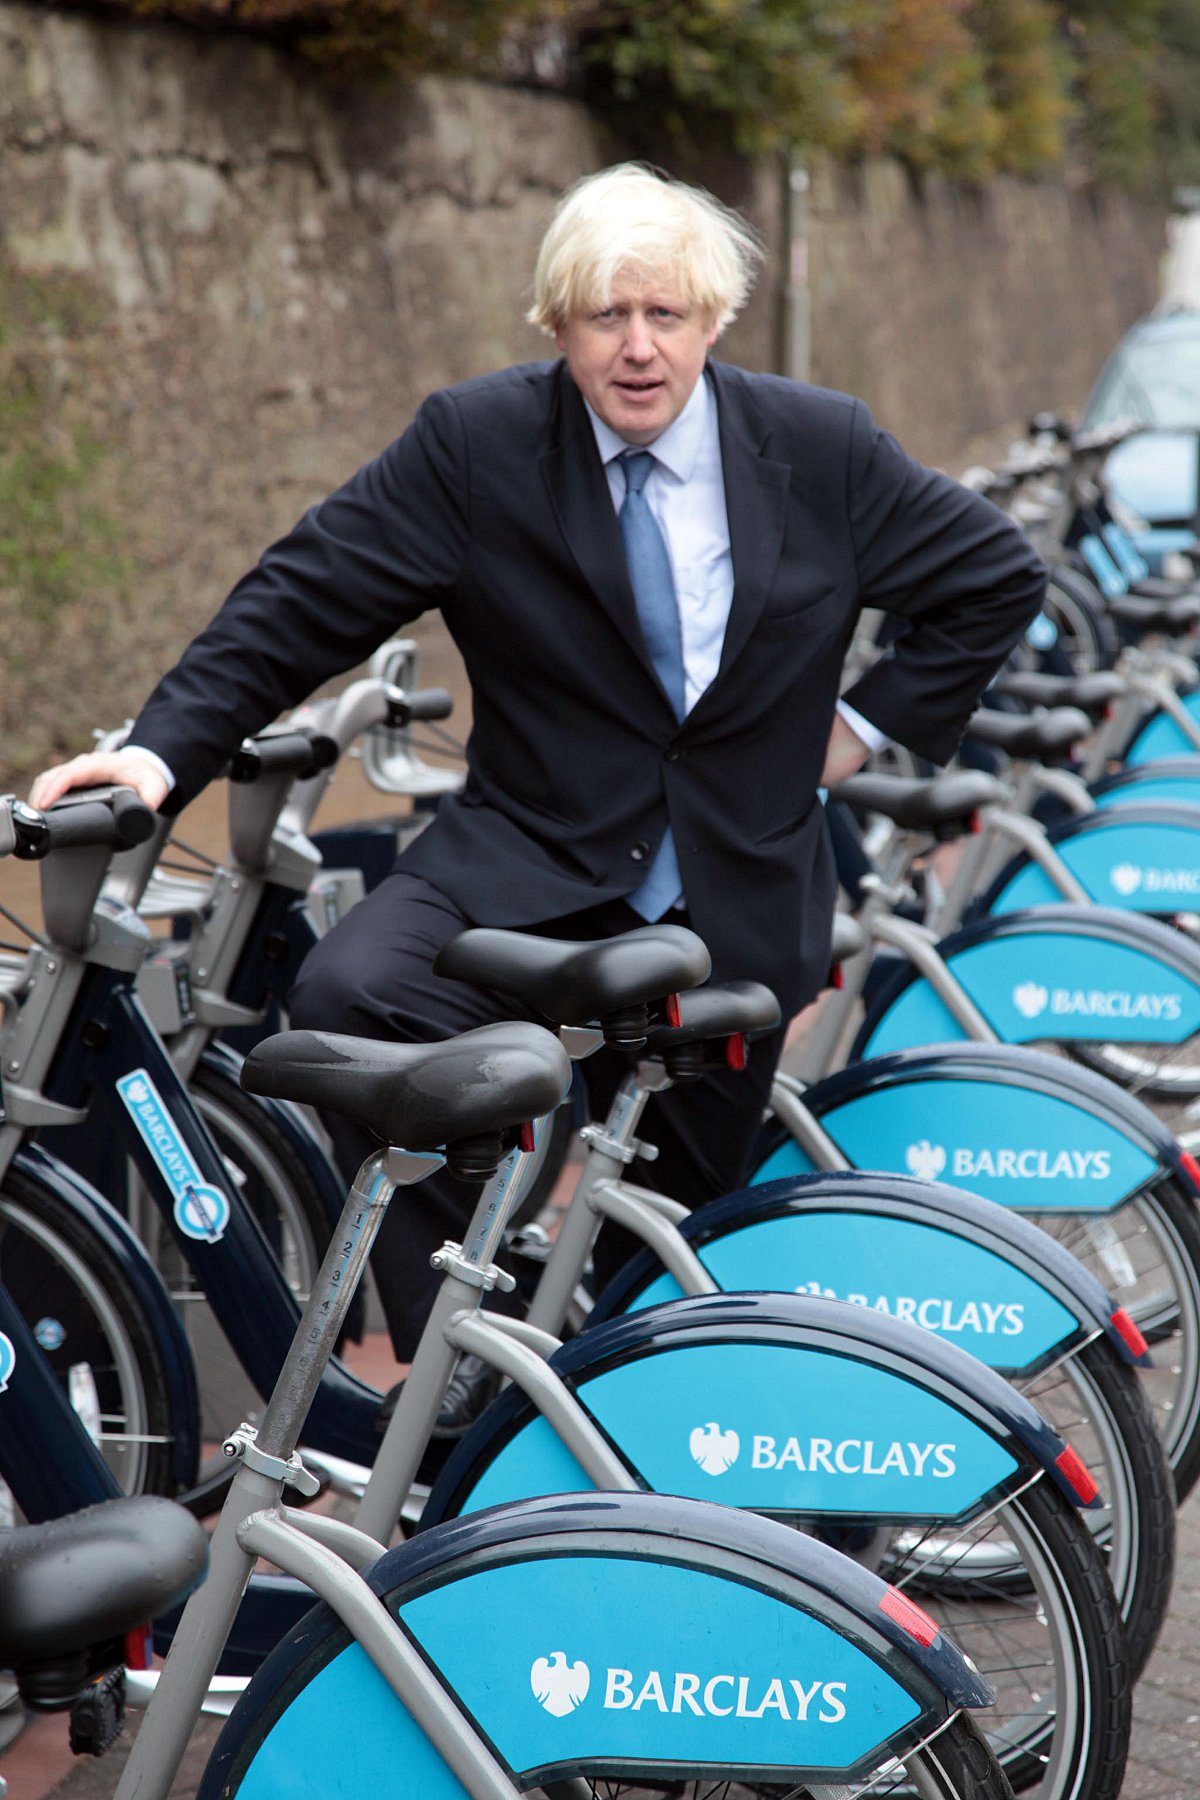 Boris Johnson with some of the bikes from the London scheme